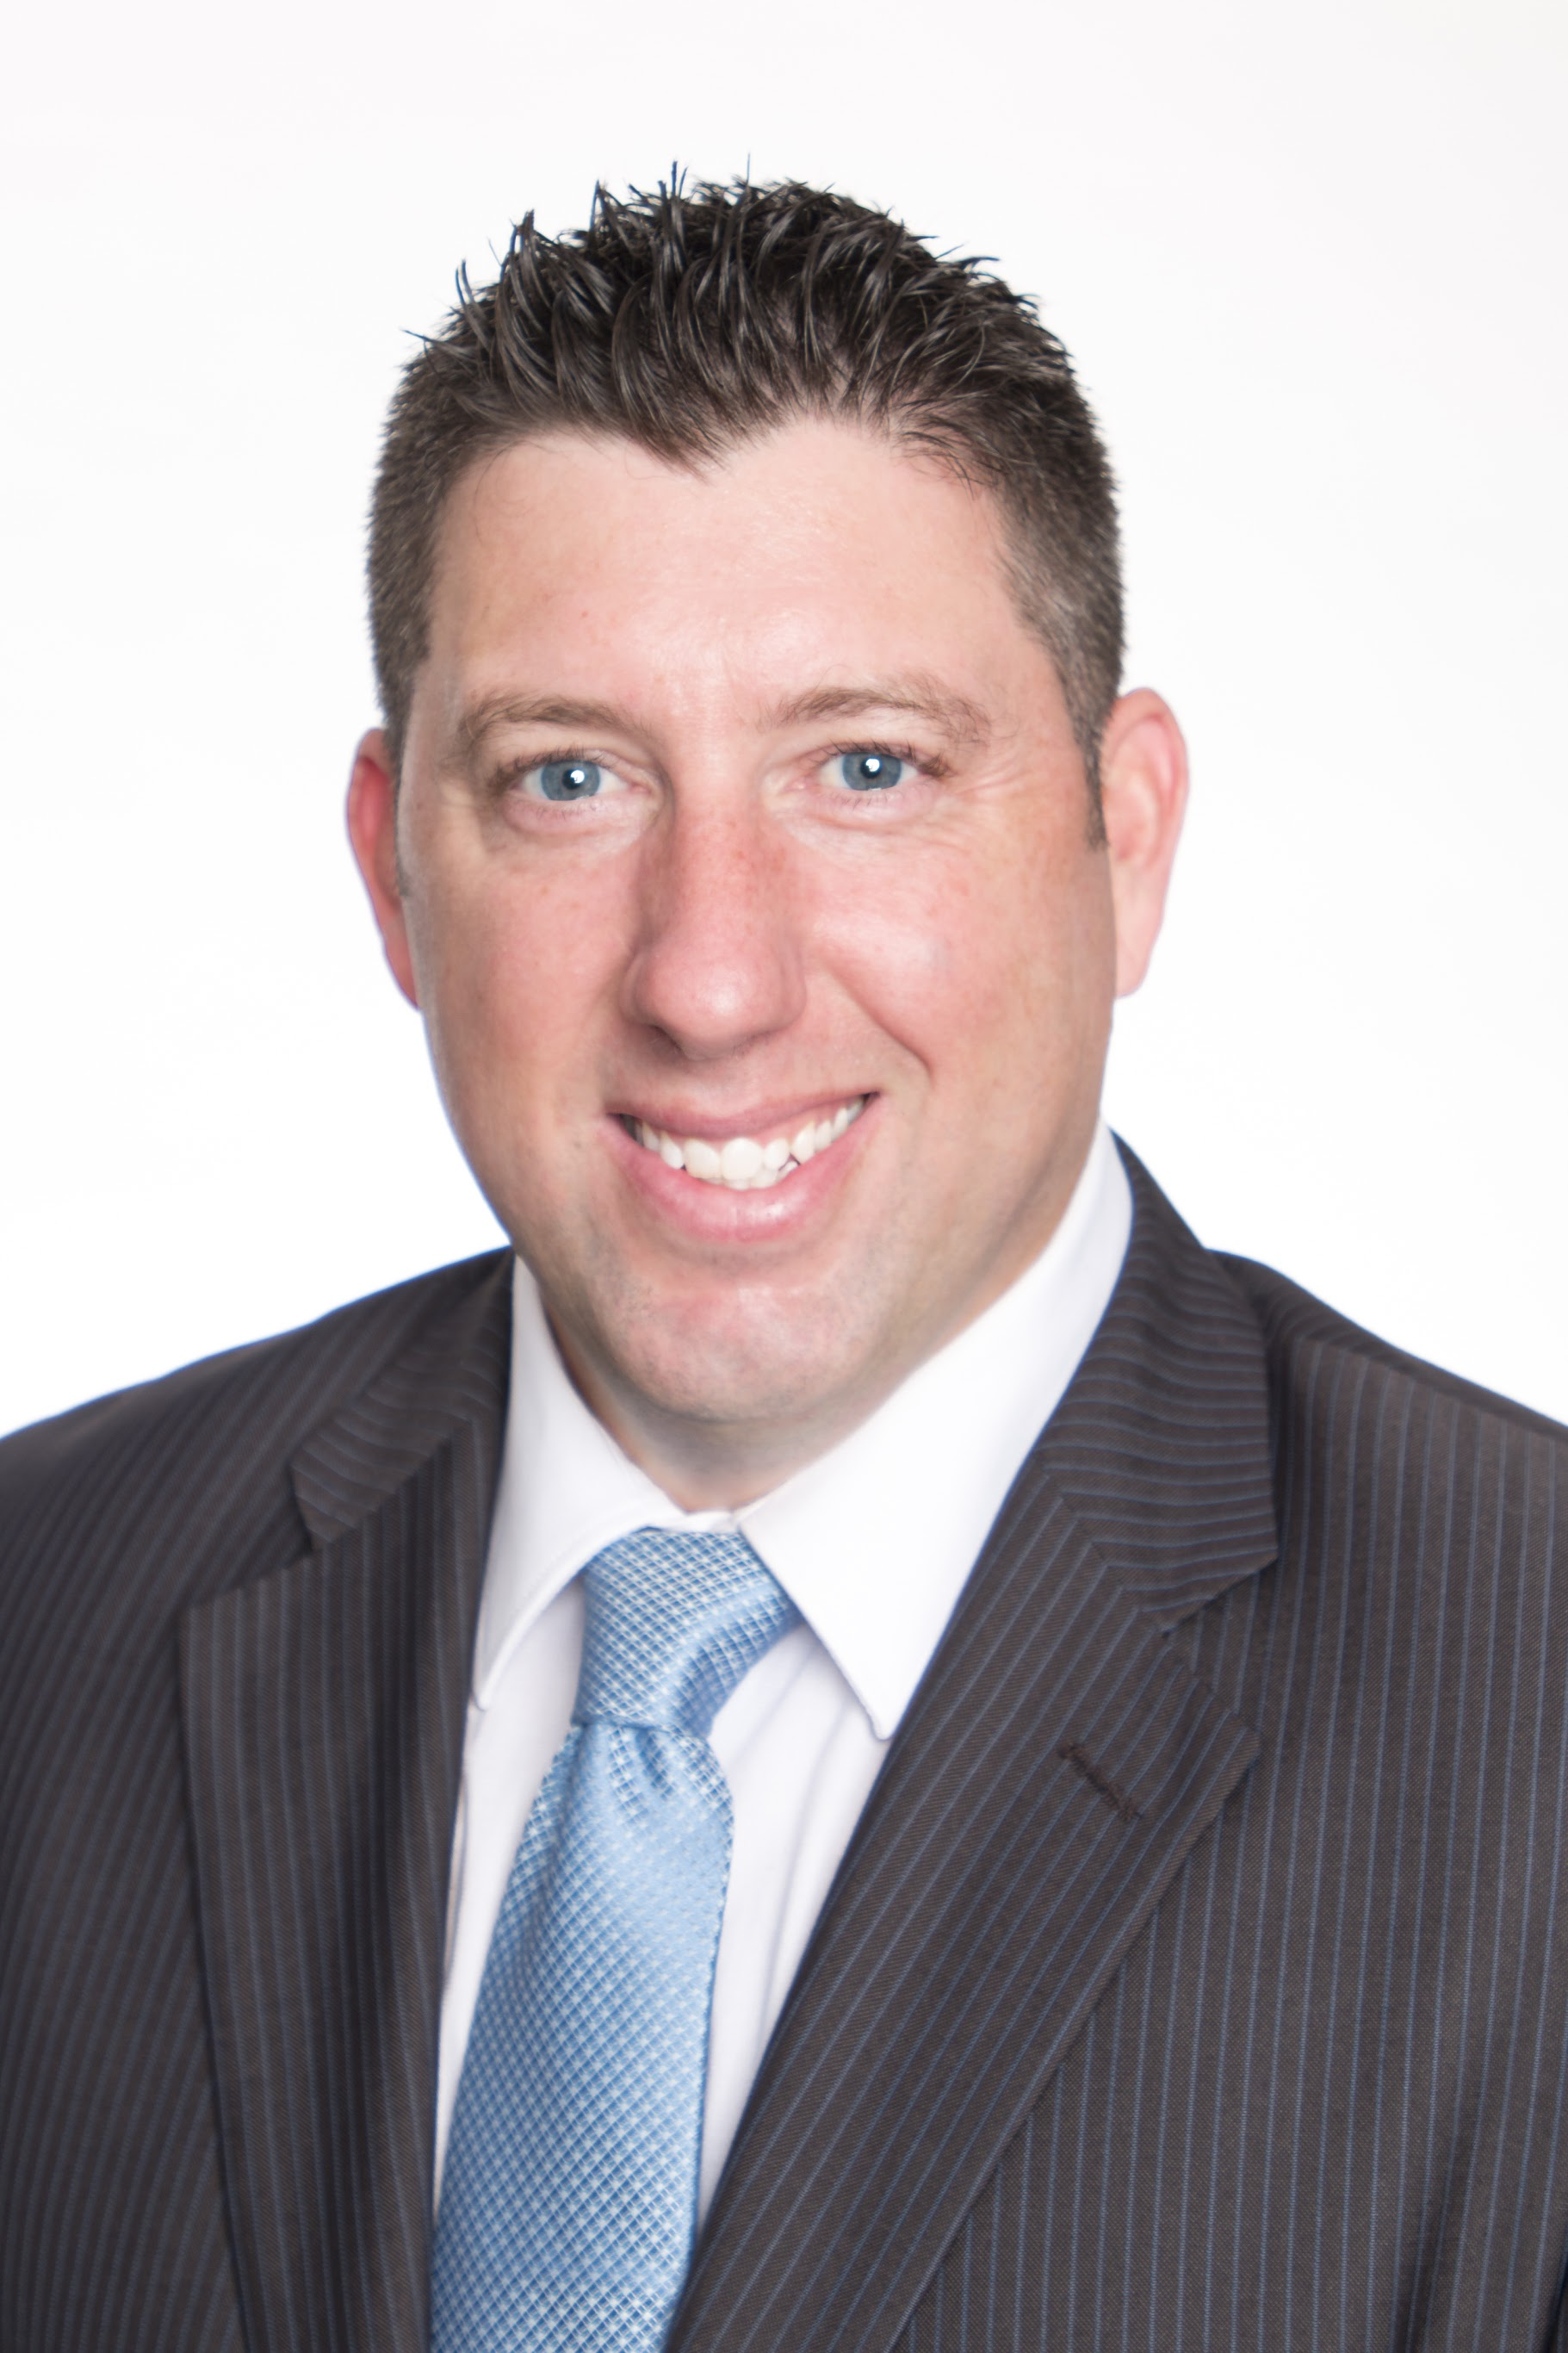 SHAWN D. KENNY Your Financial Professional & Insurance Agent